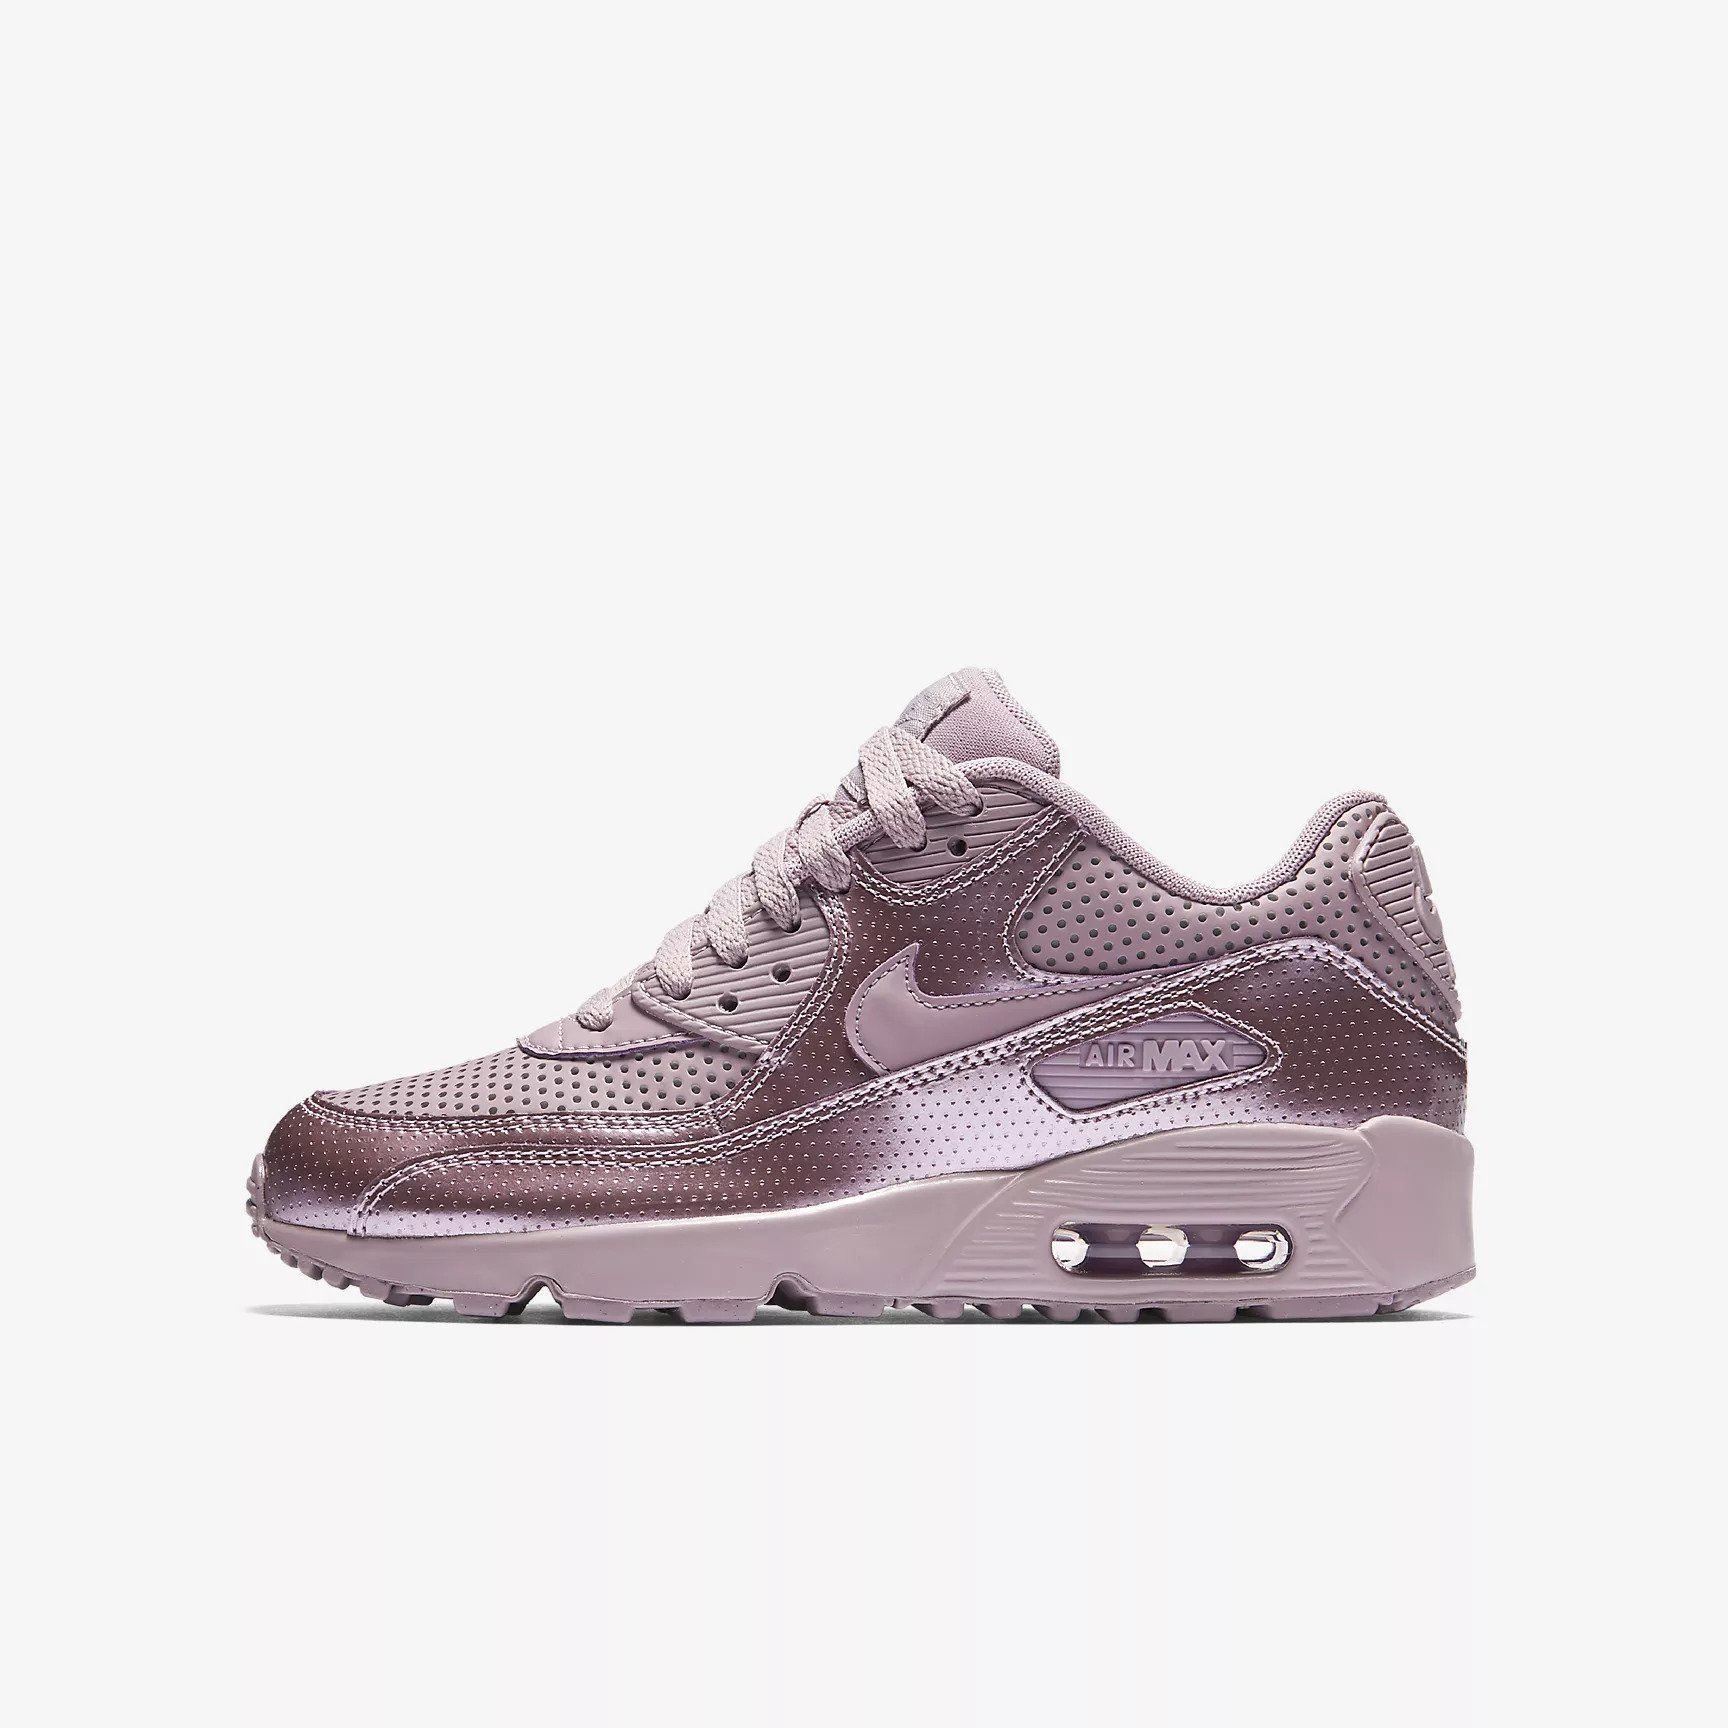 9c505d55fe57 Details about Nike Air Max 90 SE LTR (GS) Elemental Rose 859633 600 Girls  UK 3-5.5